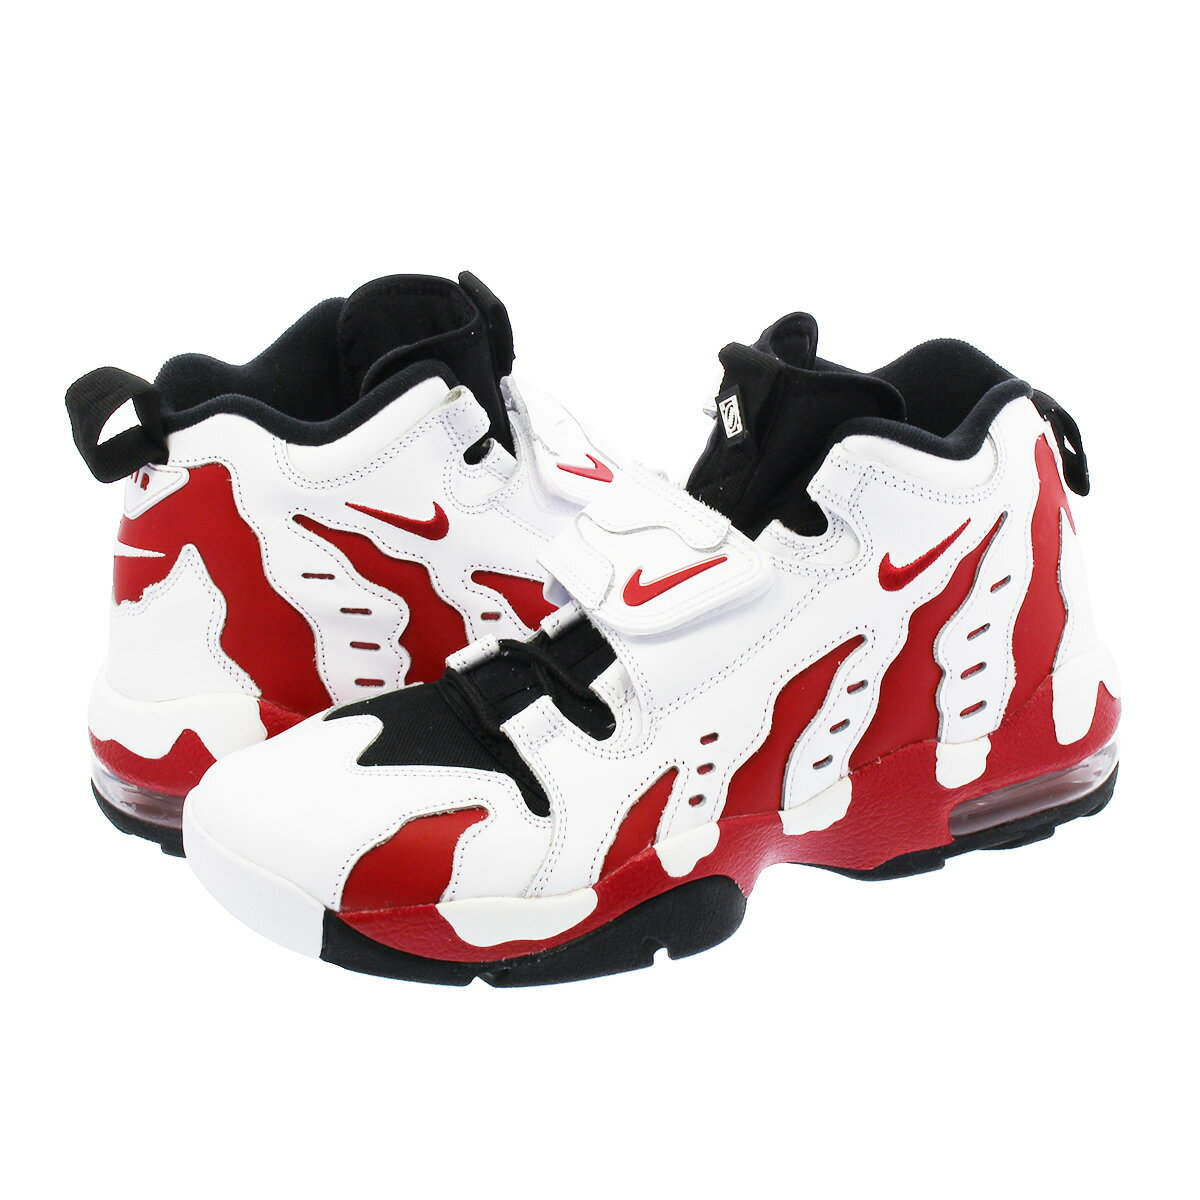 NIKE AIR DT MAX 96 【DEION SANDERS】 ナイキ エア DT マックス 96 WHITE/VARSITY RED/BLACK